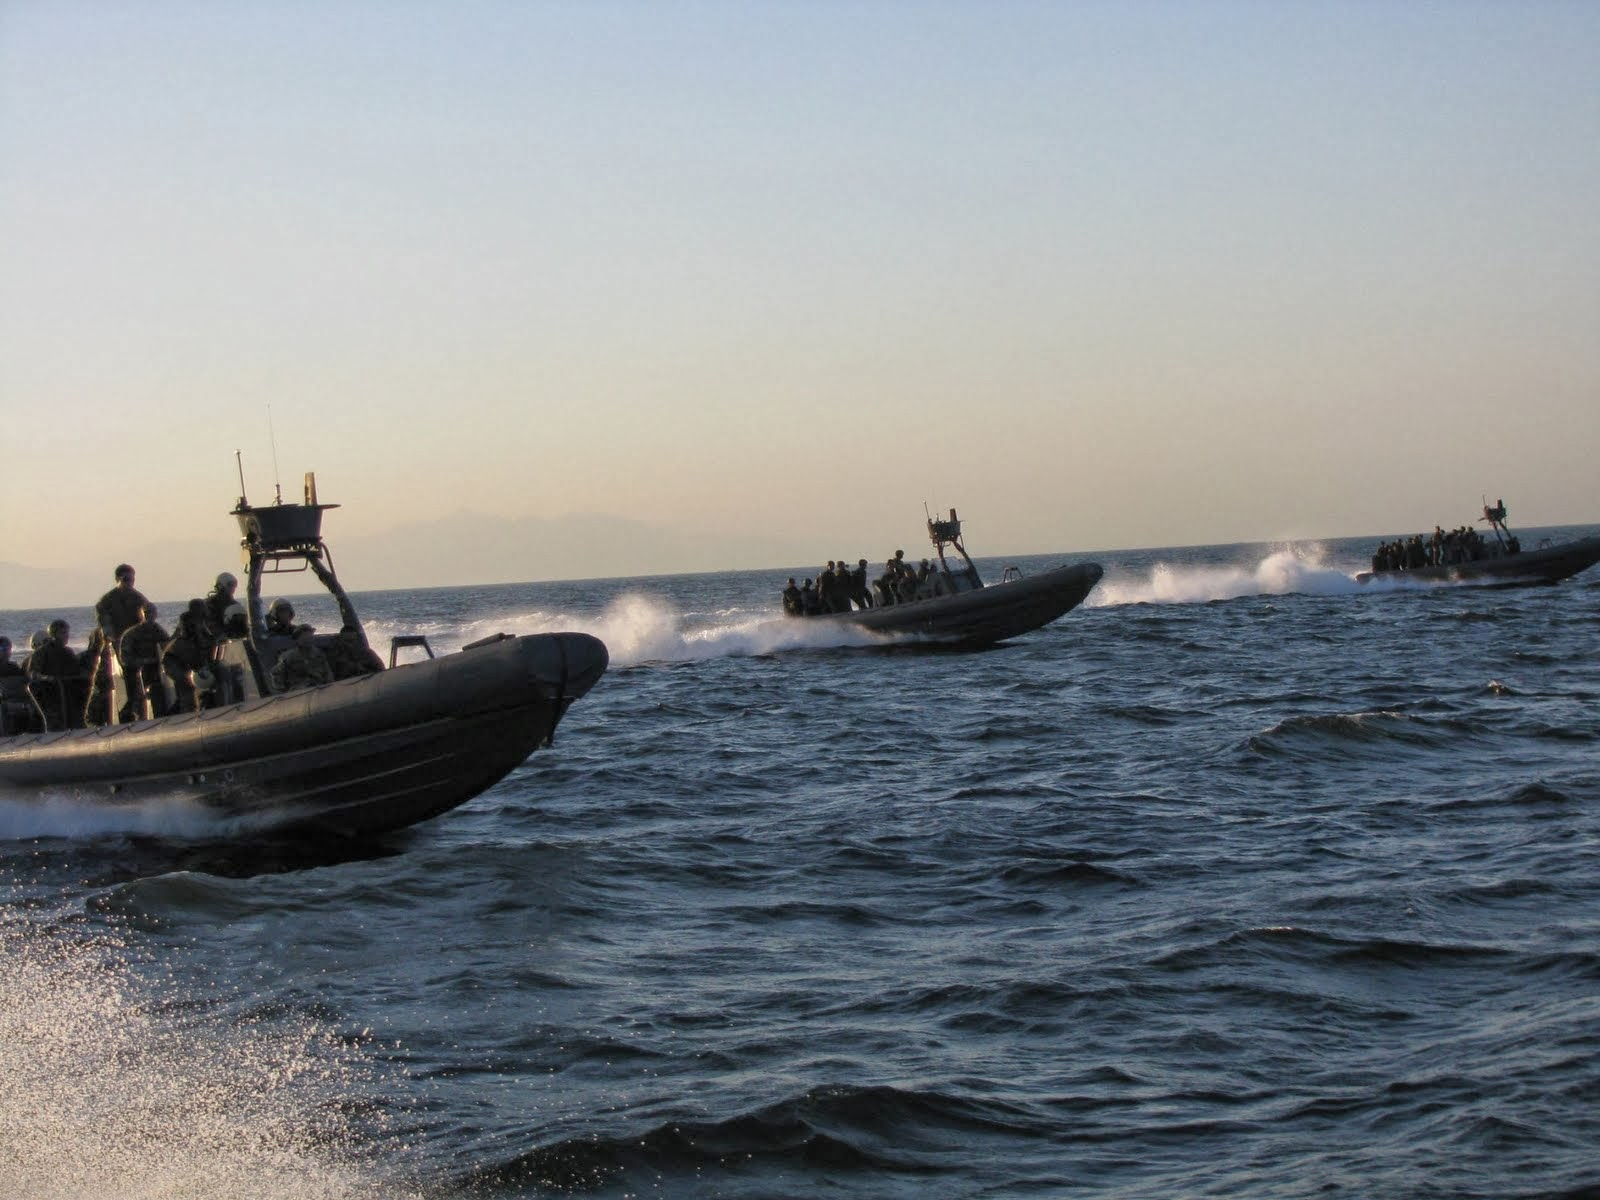 team, together with their RHIB can call the new frigates their home